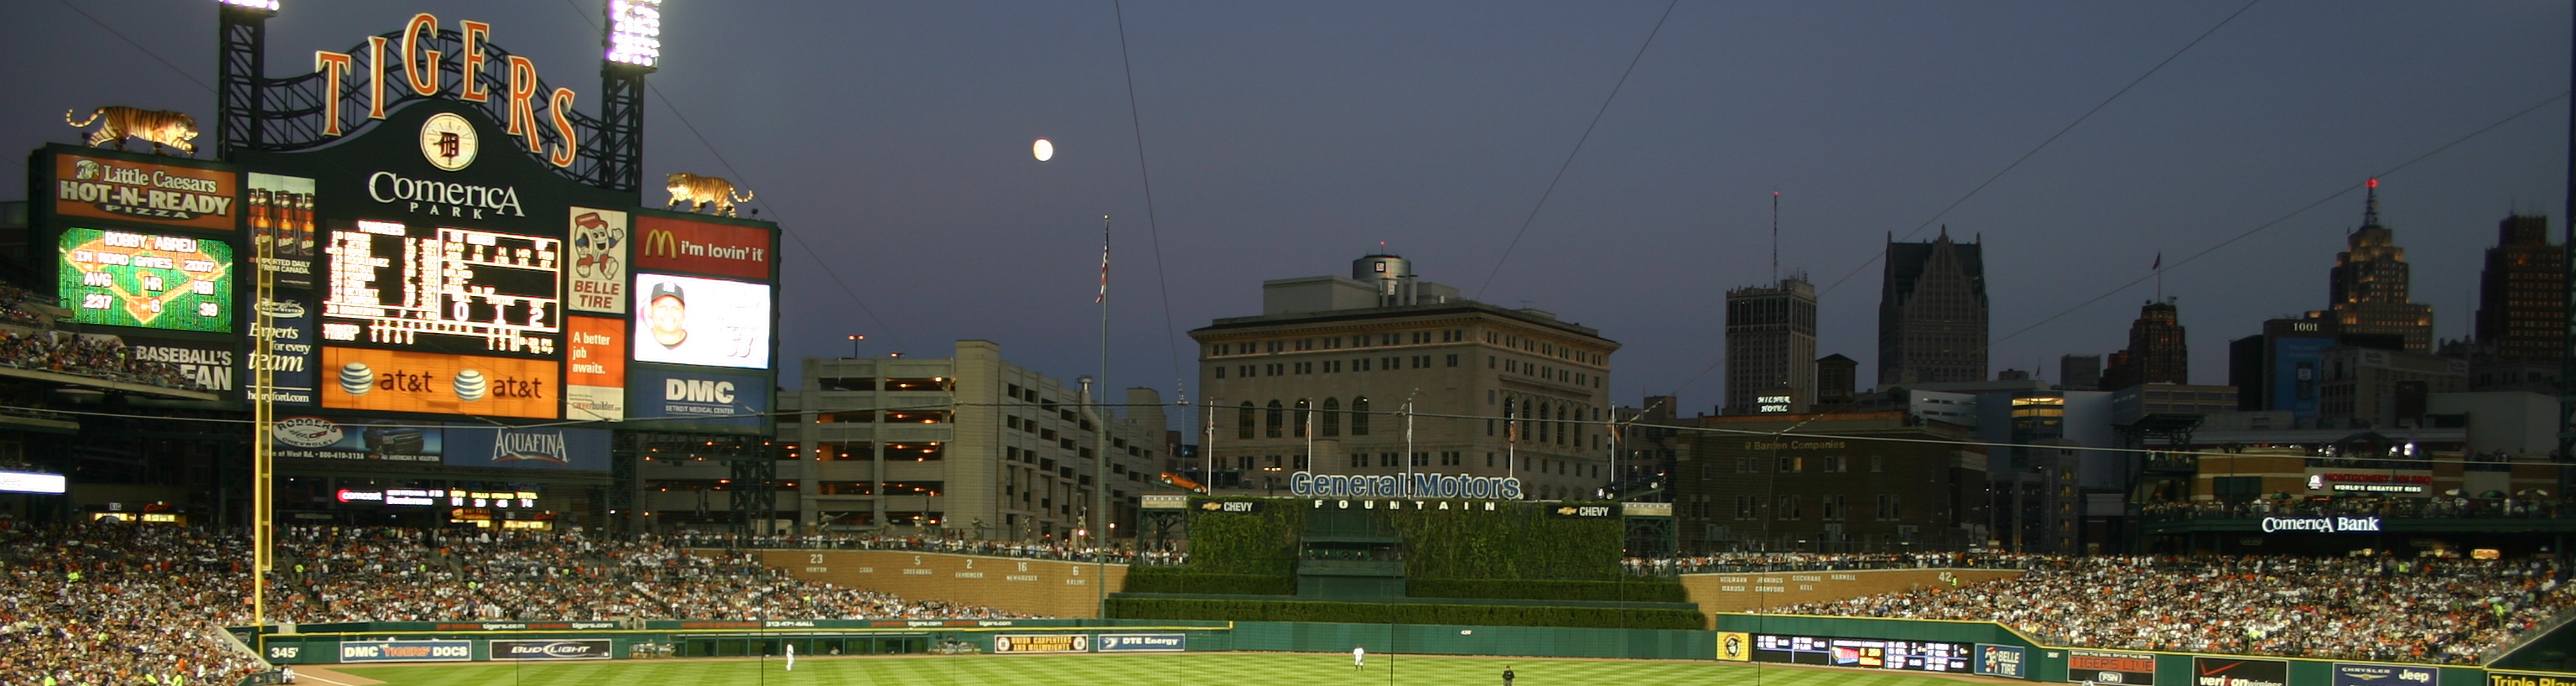 Comerica Park,Tigers,baseball vacation packages